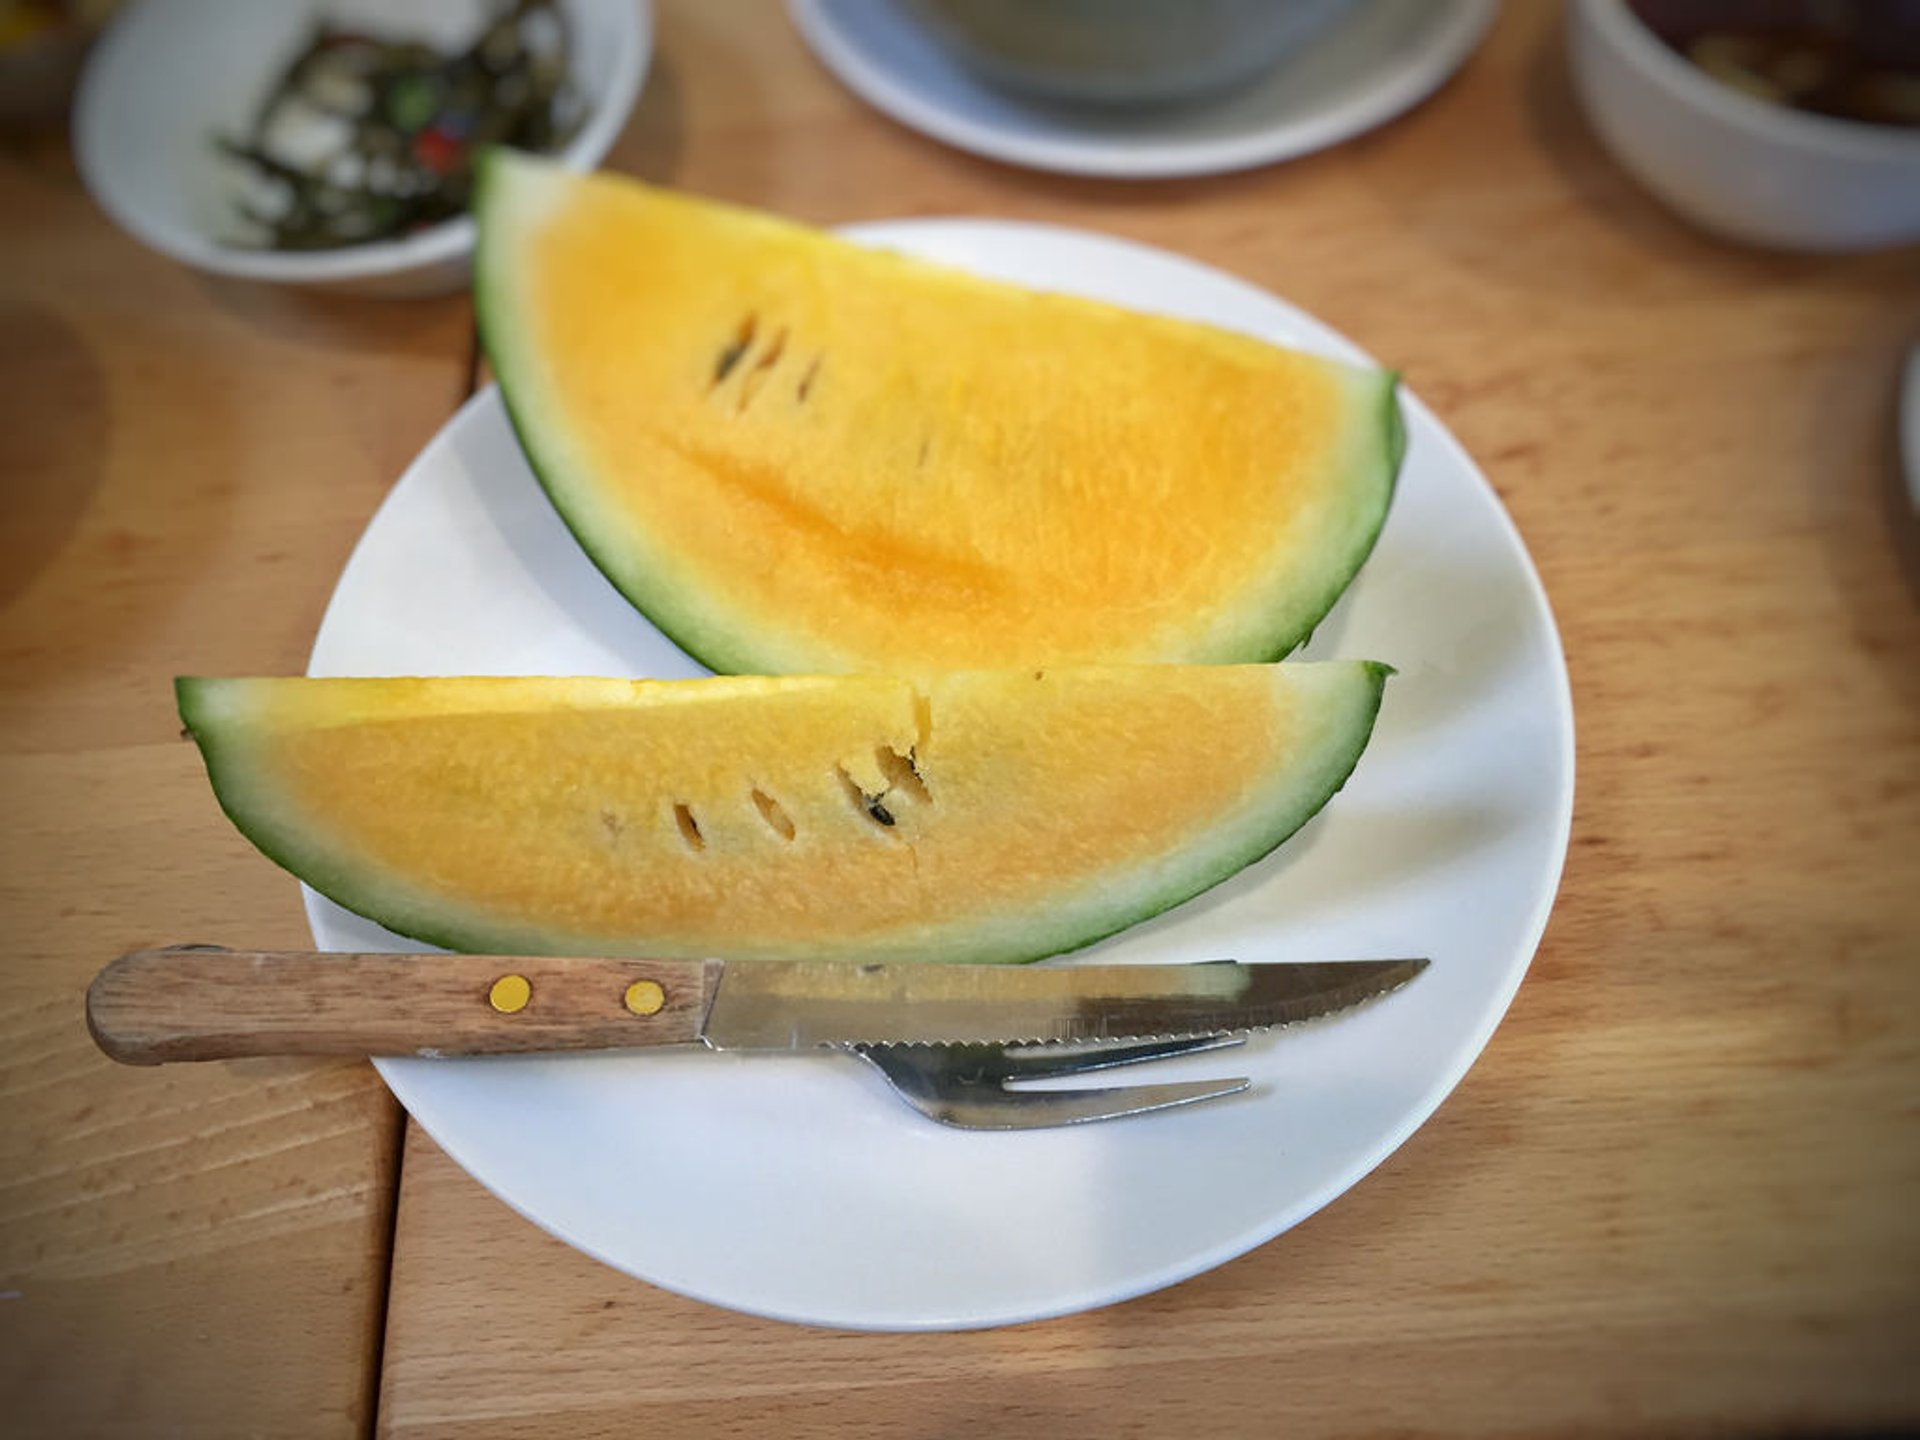 Yellow Watermelon in Taiwan 2019 - Best Time